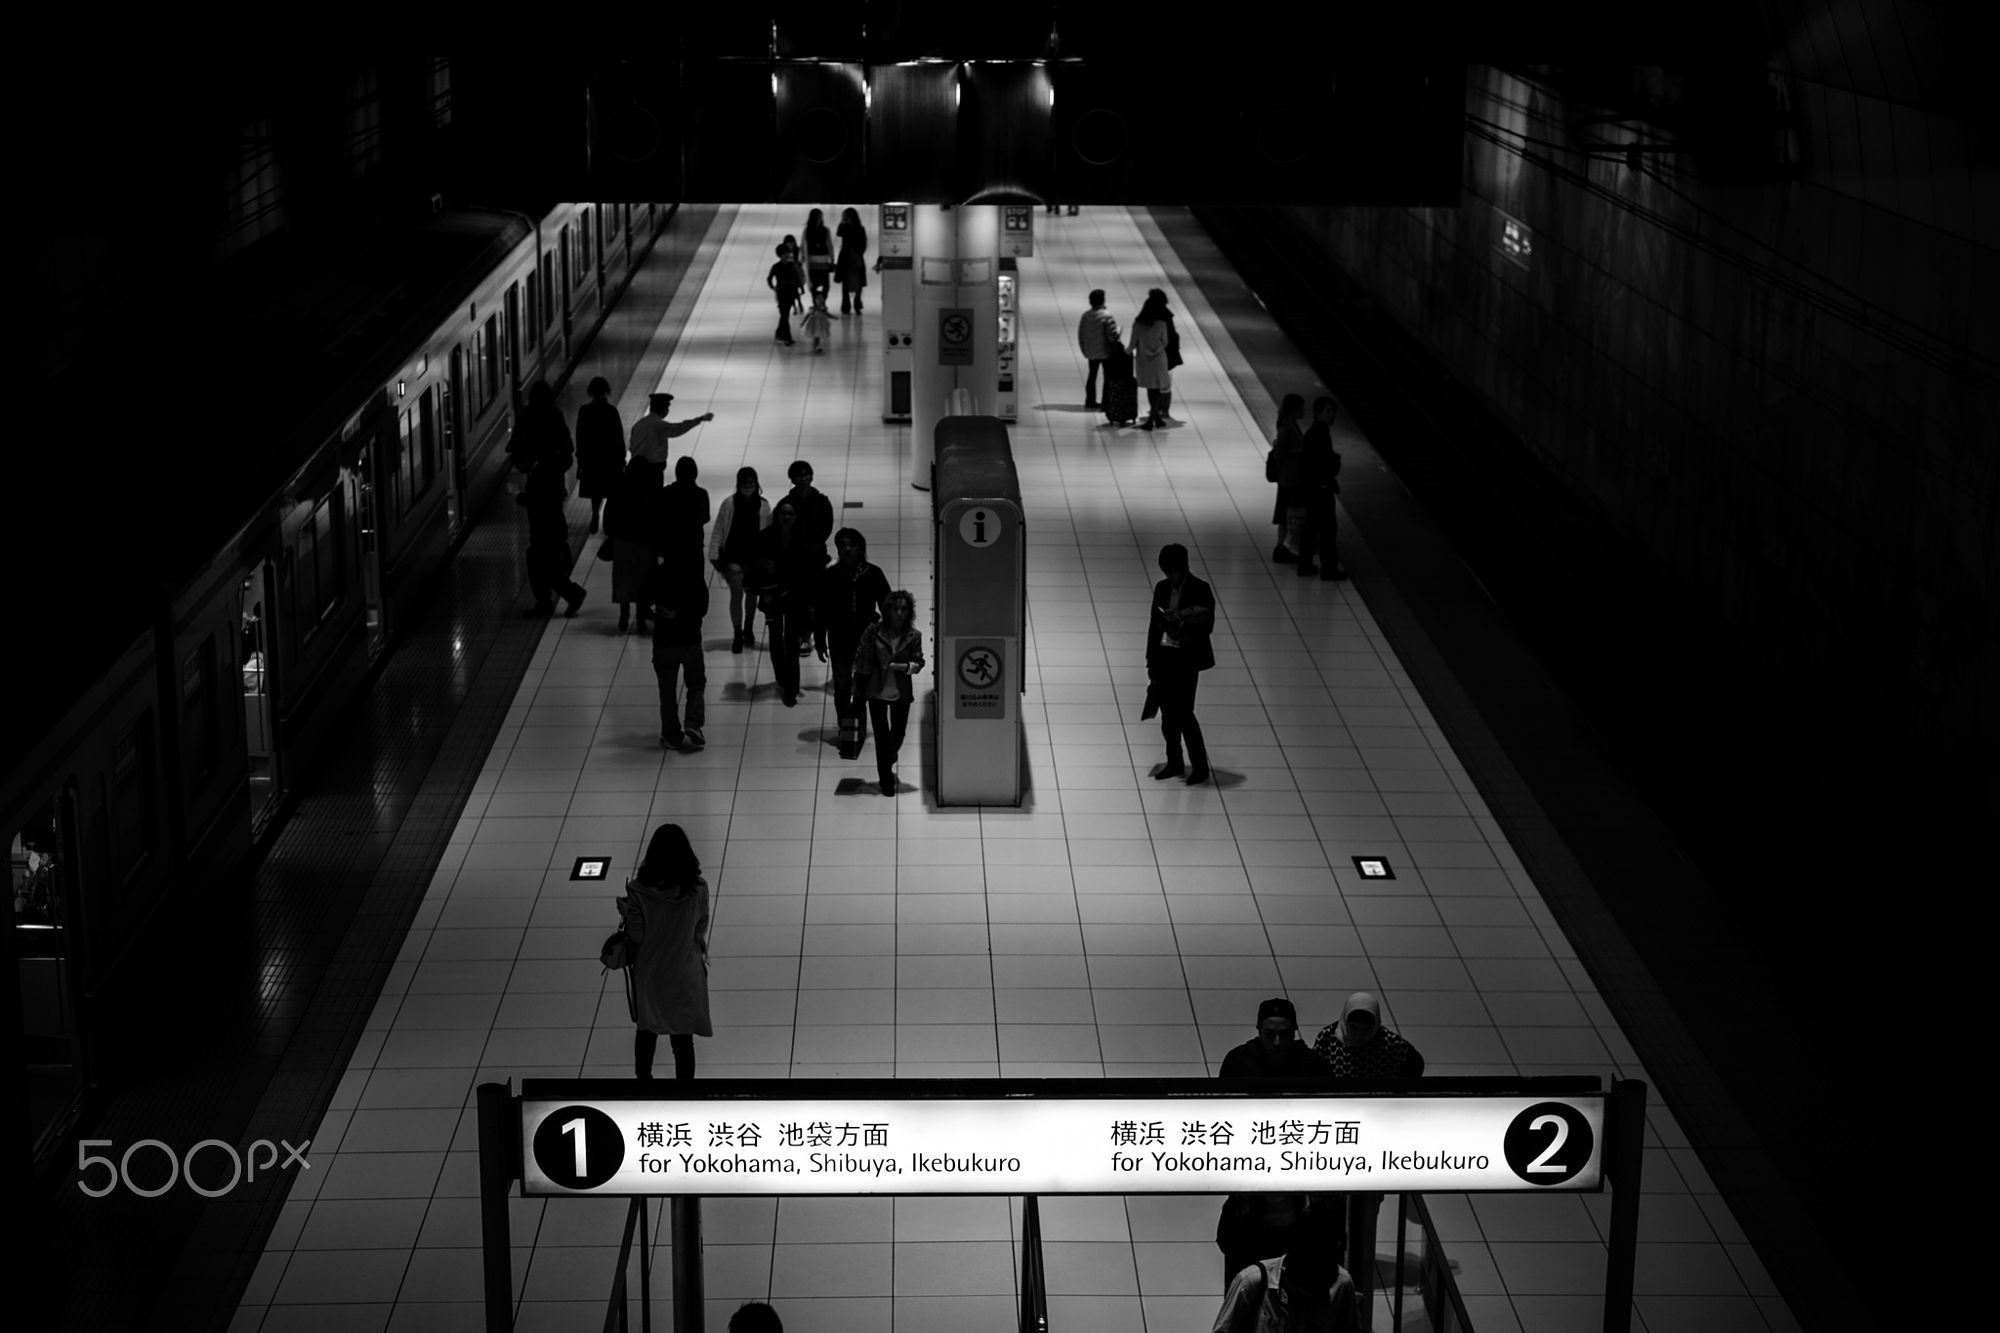 Urban Exploration: People at a station by summit1000 https://t.co/iHbaLtBGZV | #500px #photography #photos https://t.co/88VSqdNMjw #follo #photography